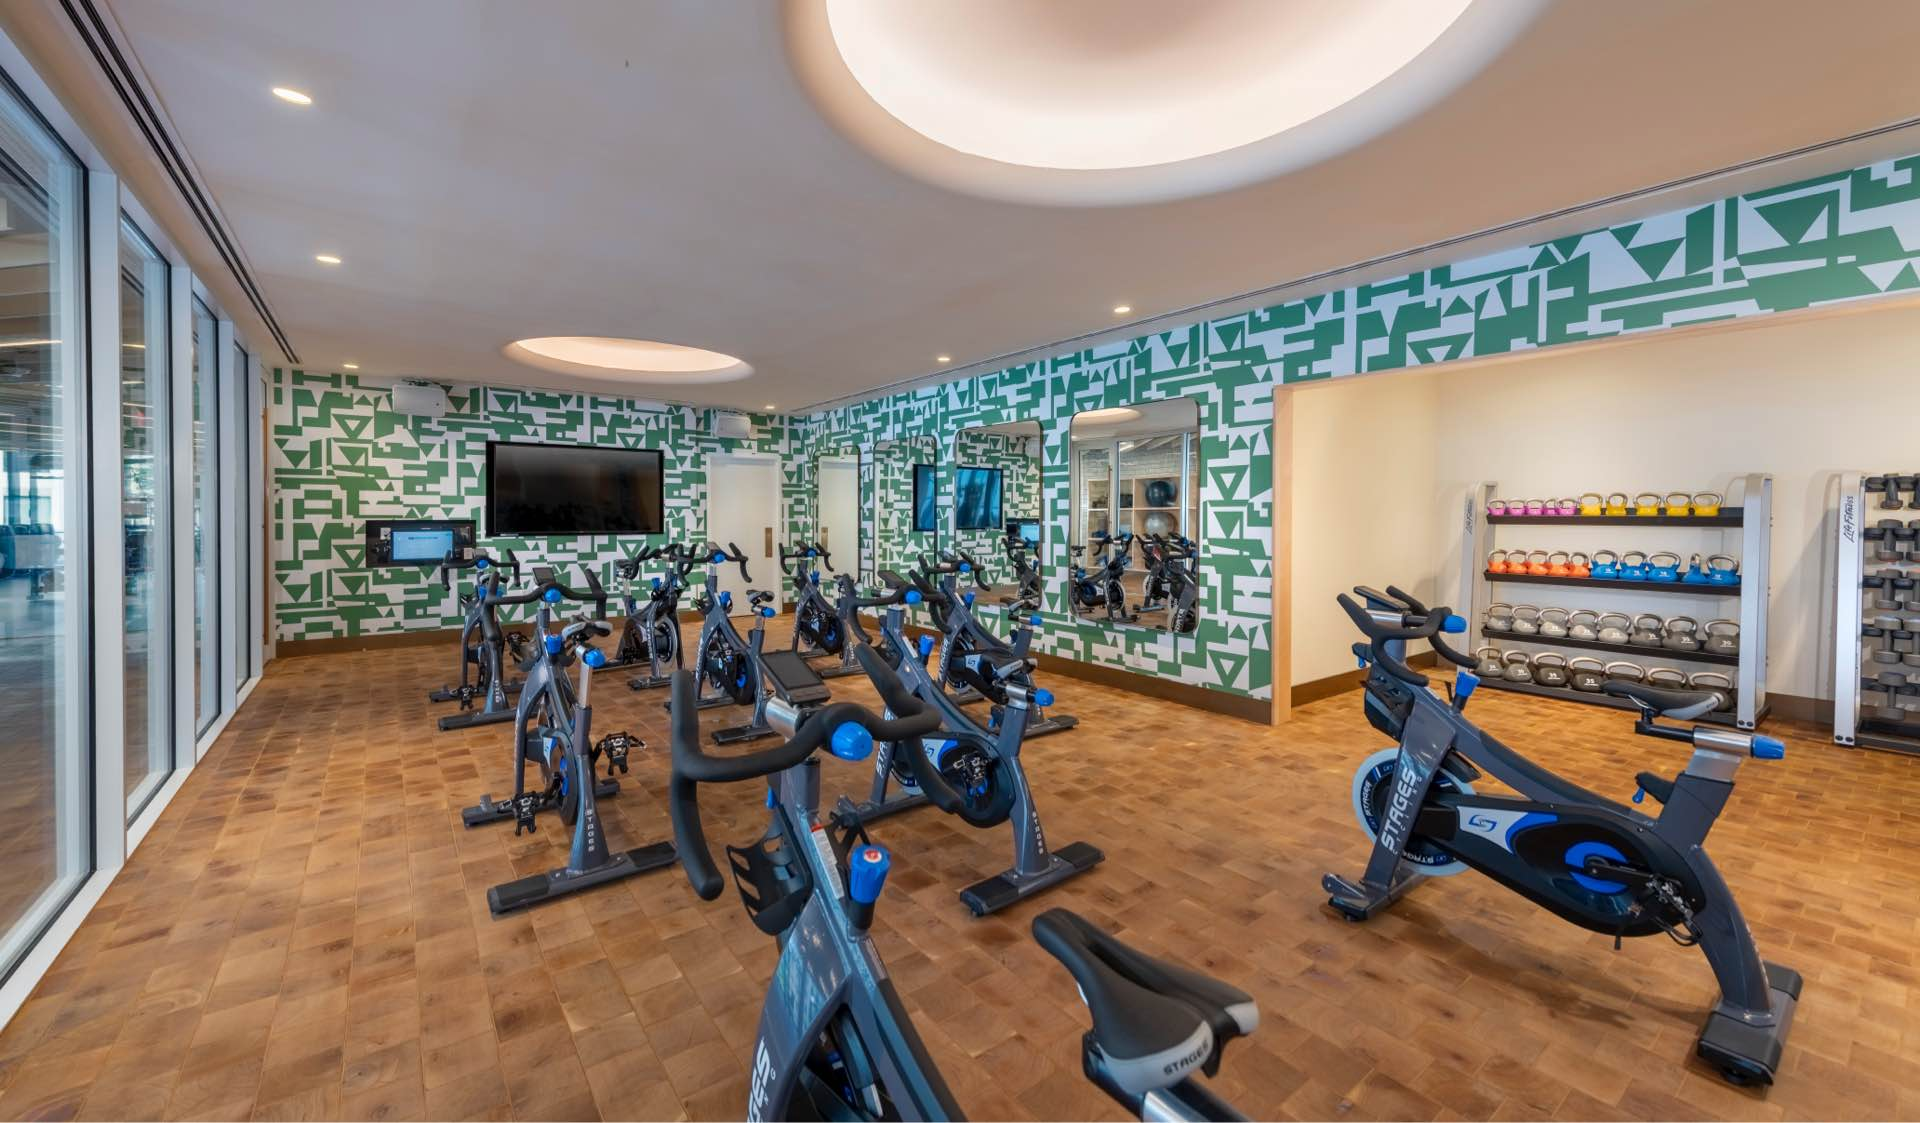 Curated Fitness Studio with 24-hour access and a private training area.